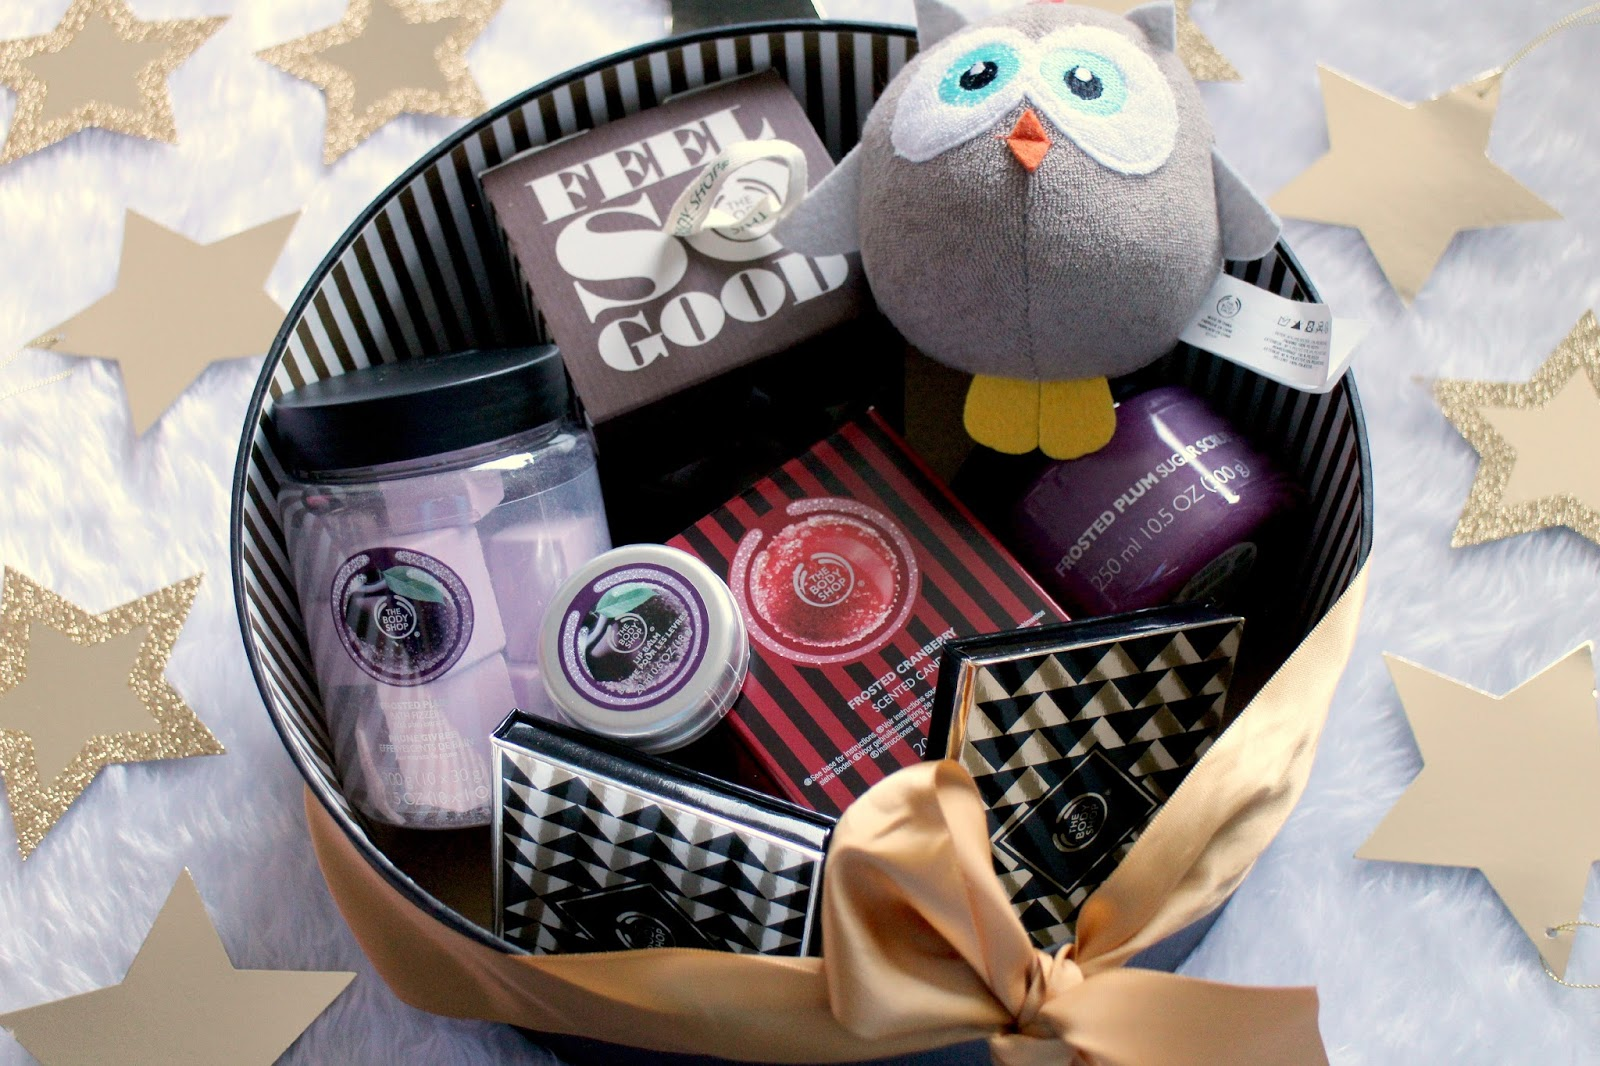 blogmas day 12 create your own gift with the body shop ellis tuesday